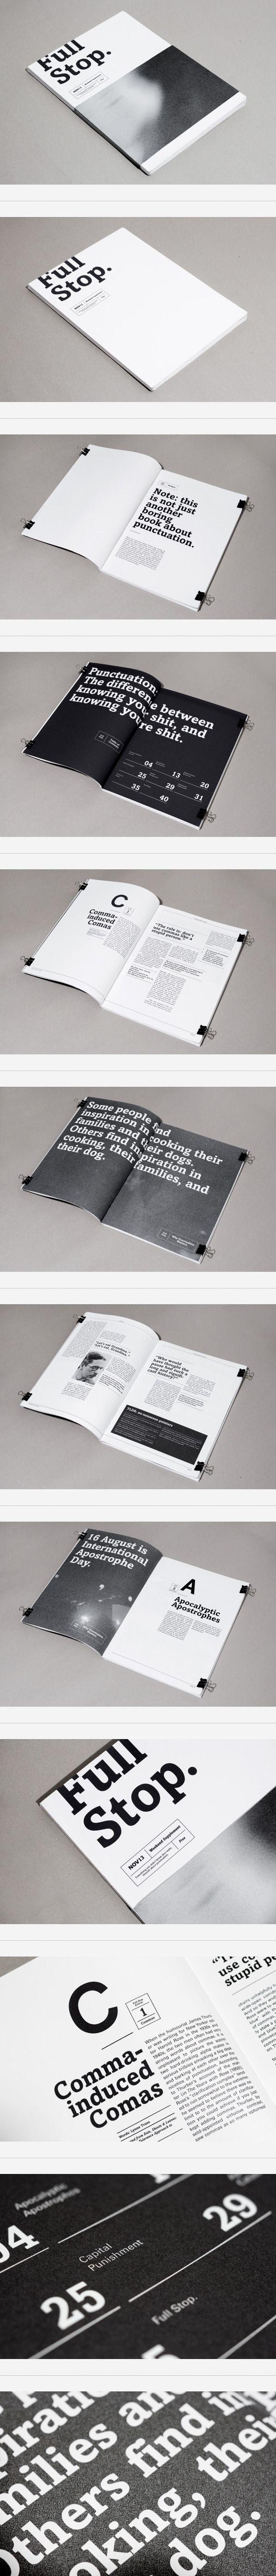 Full Stop / designed by Sidney Lim YX